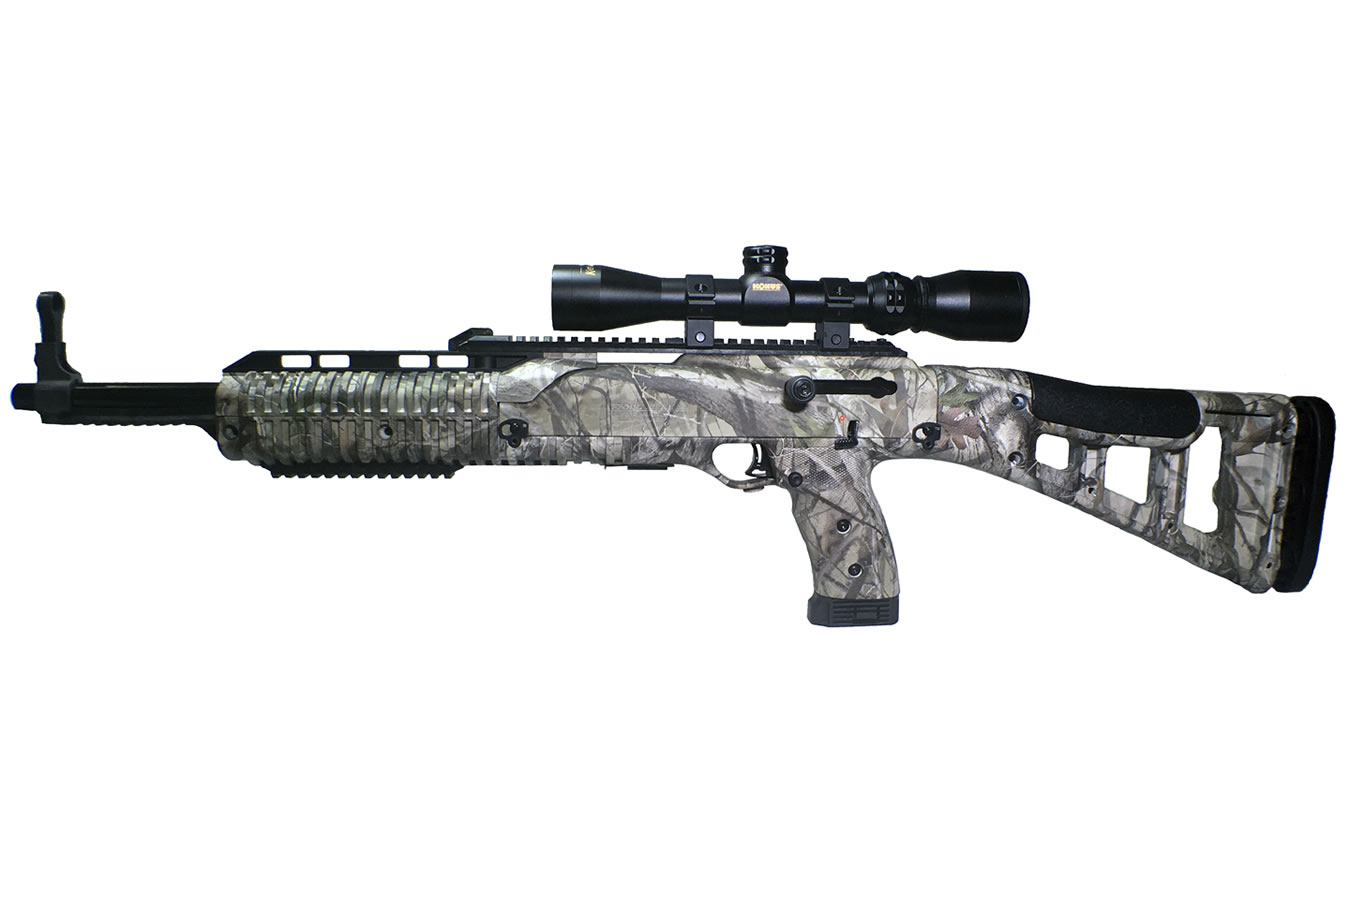 4095 HUNTER CARBINE WC CAMO WITH SCOPE